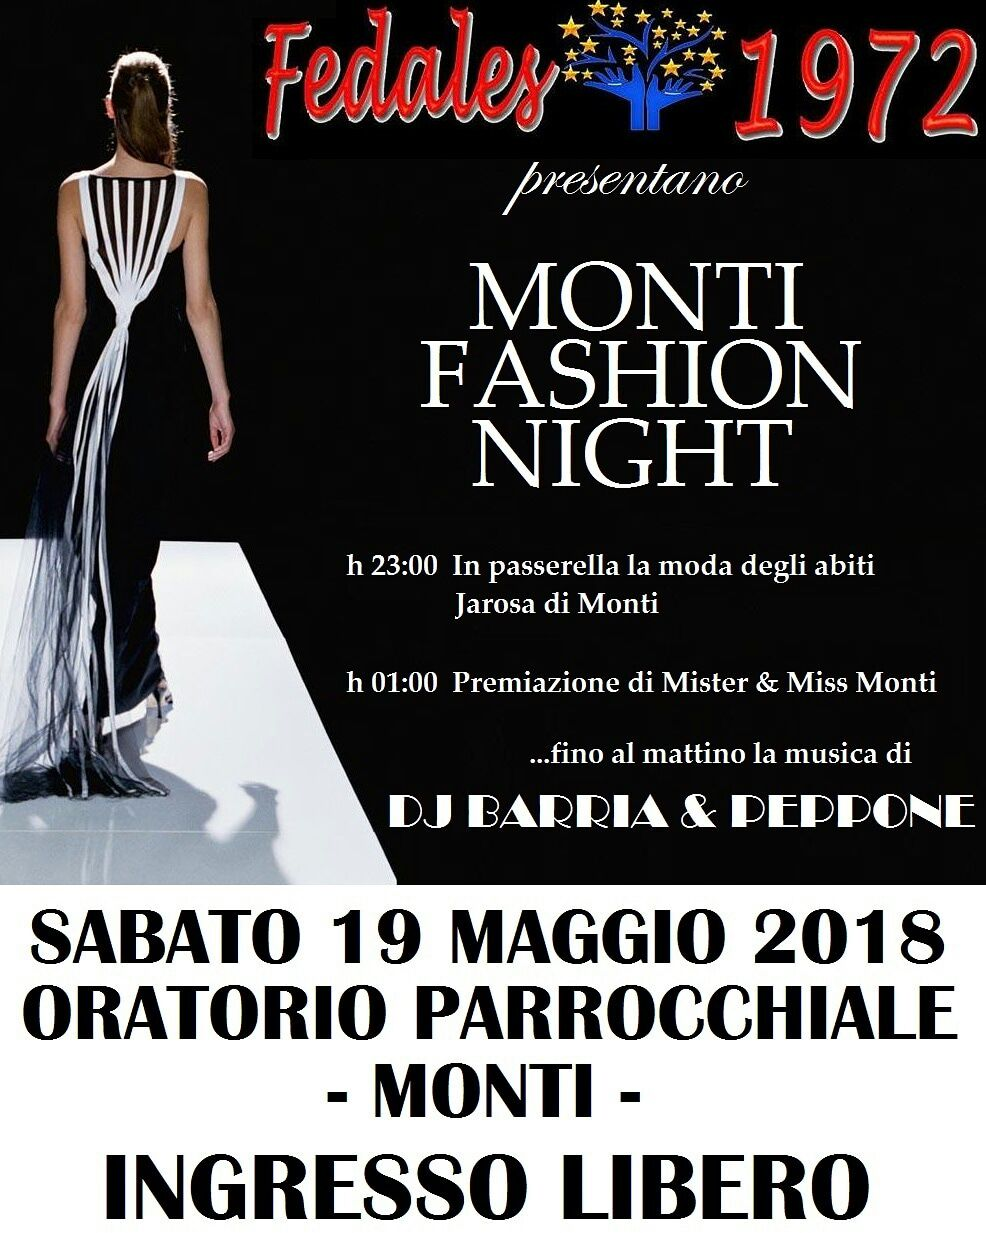 Monti fashion night